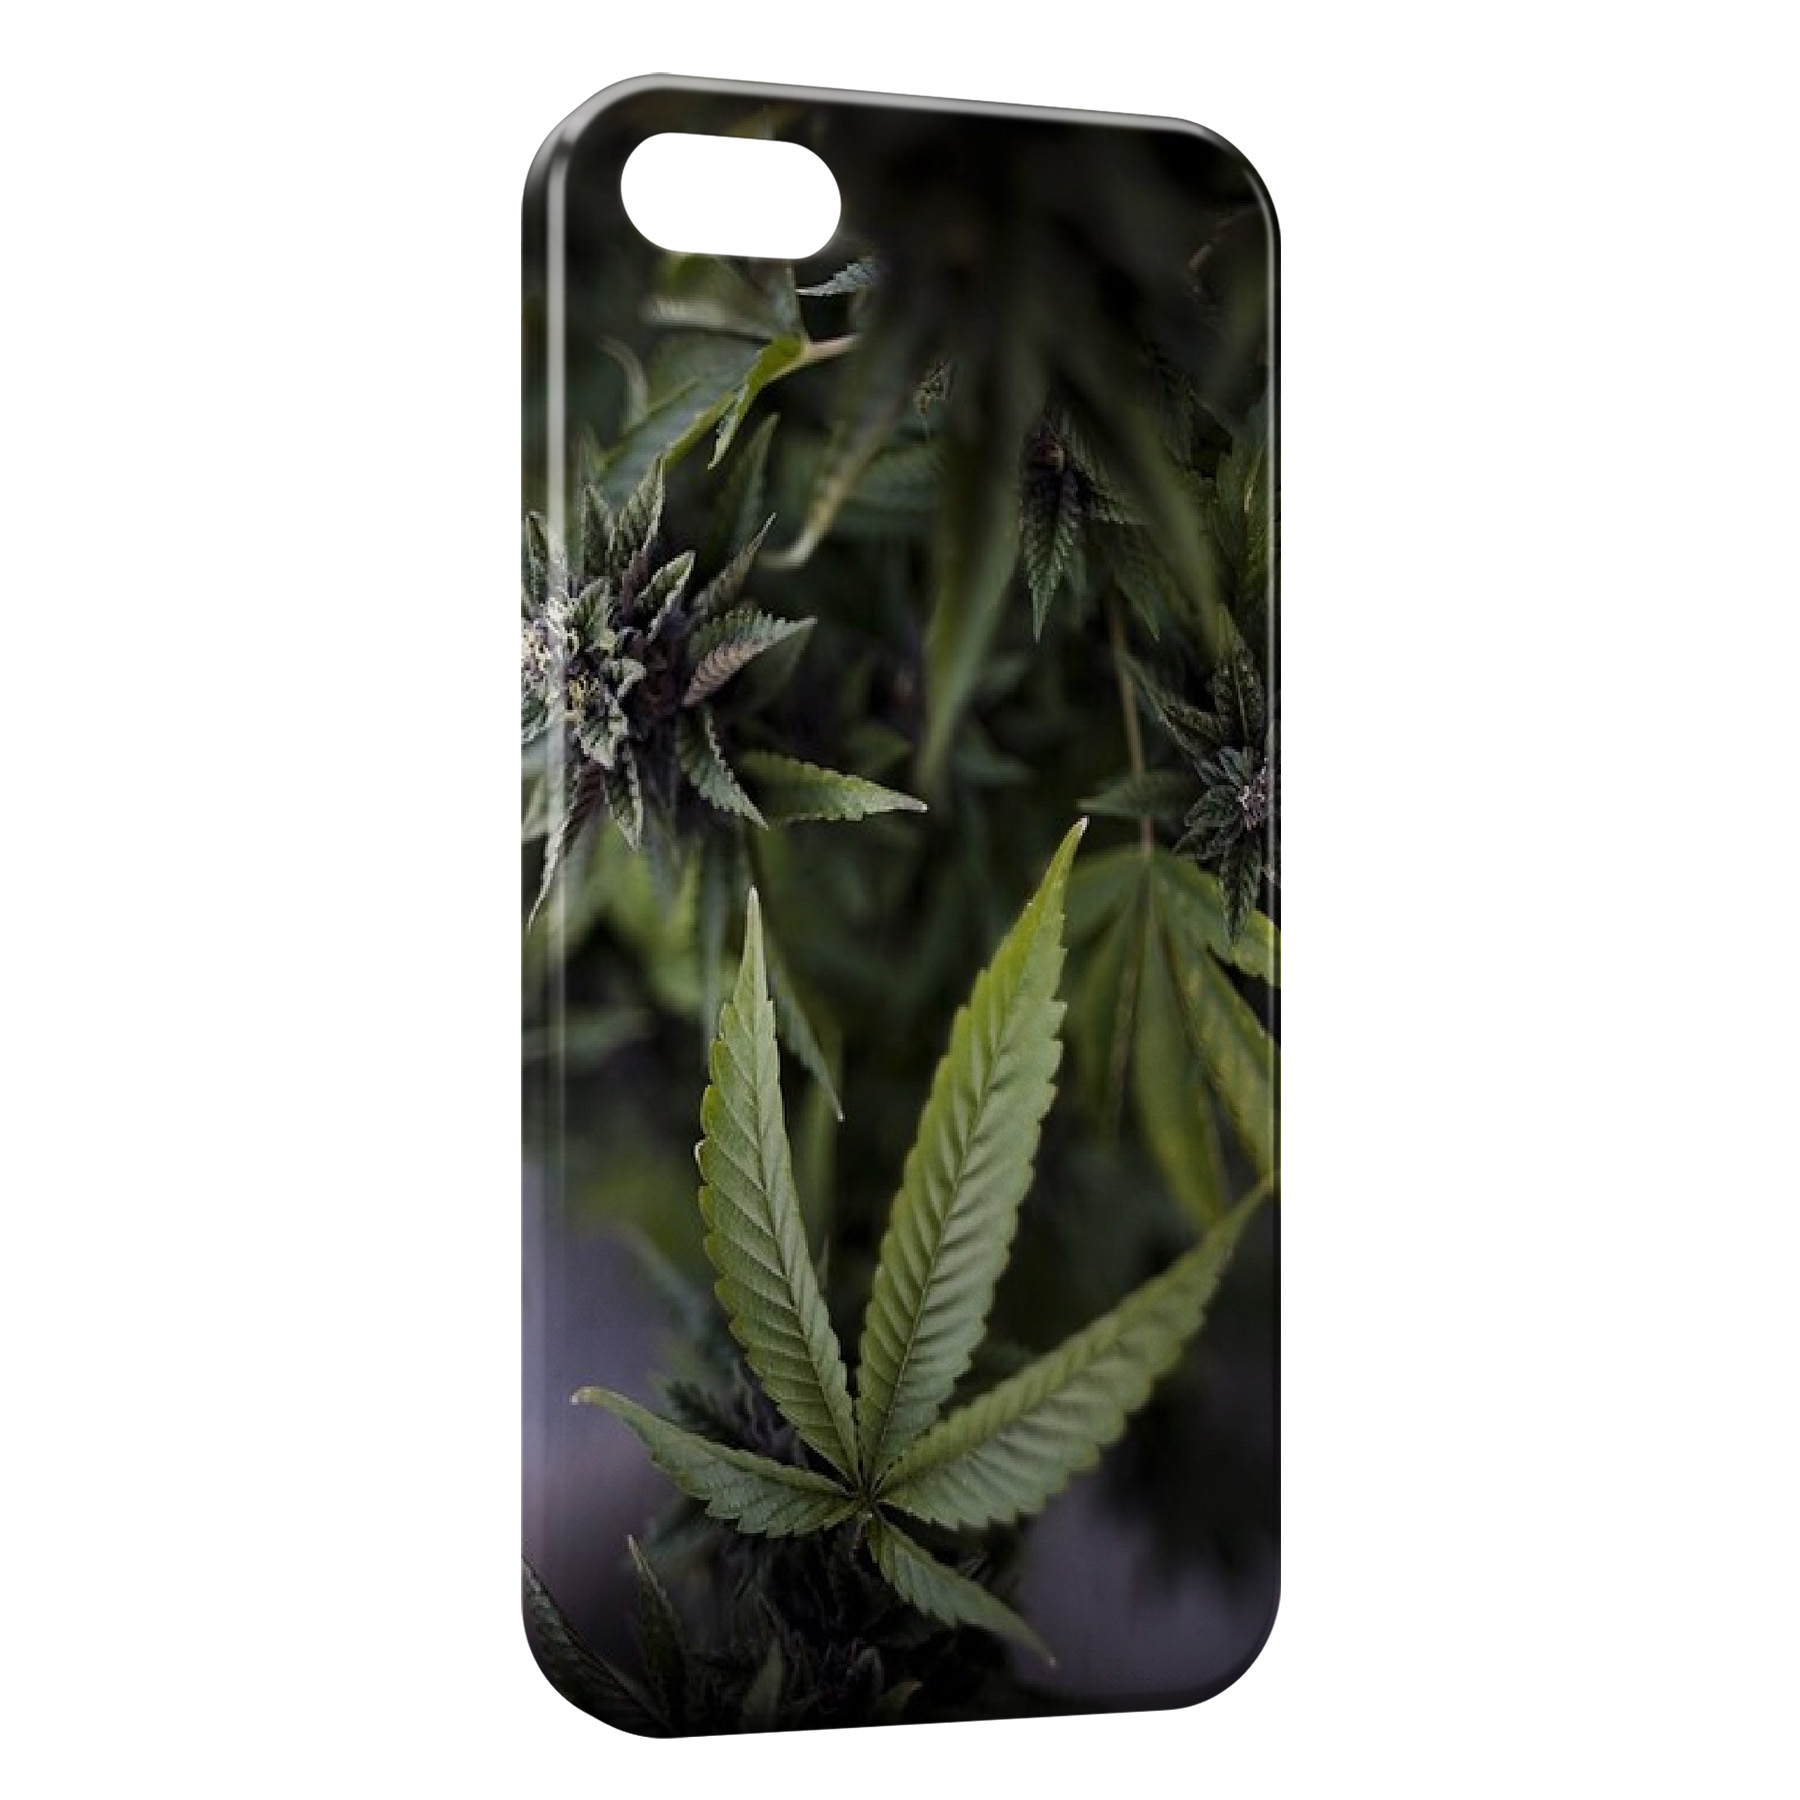 Coque iPhone 4 4S Cannabis Weed 2